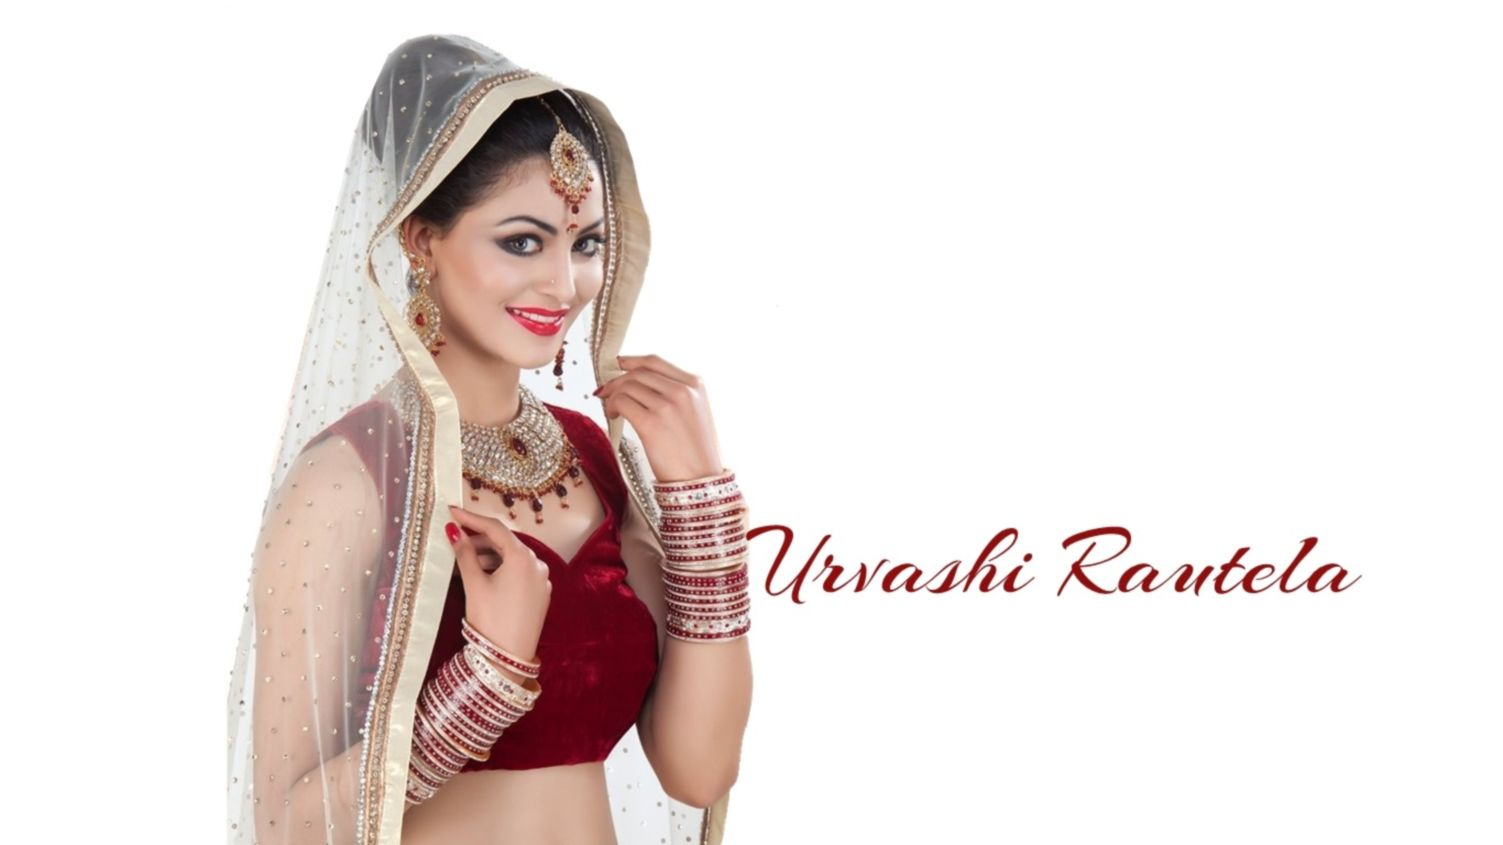 Download free HD Urvashi Rautela In Bride Dress Wallpaper, image